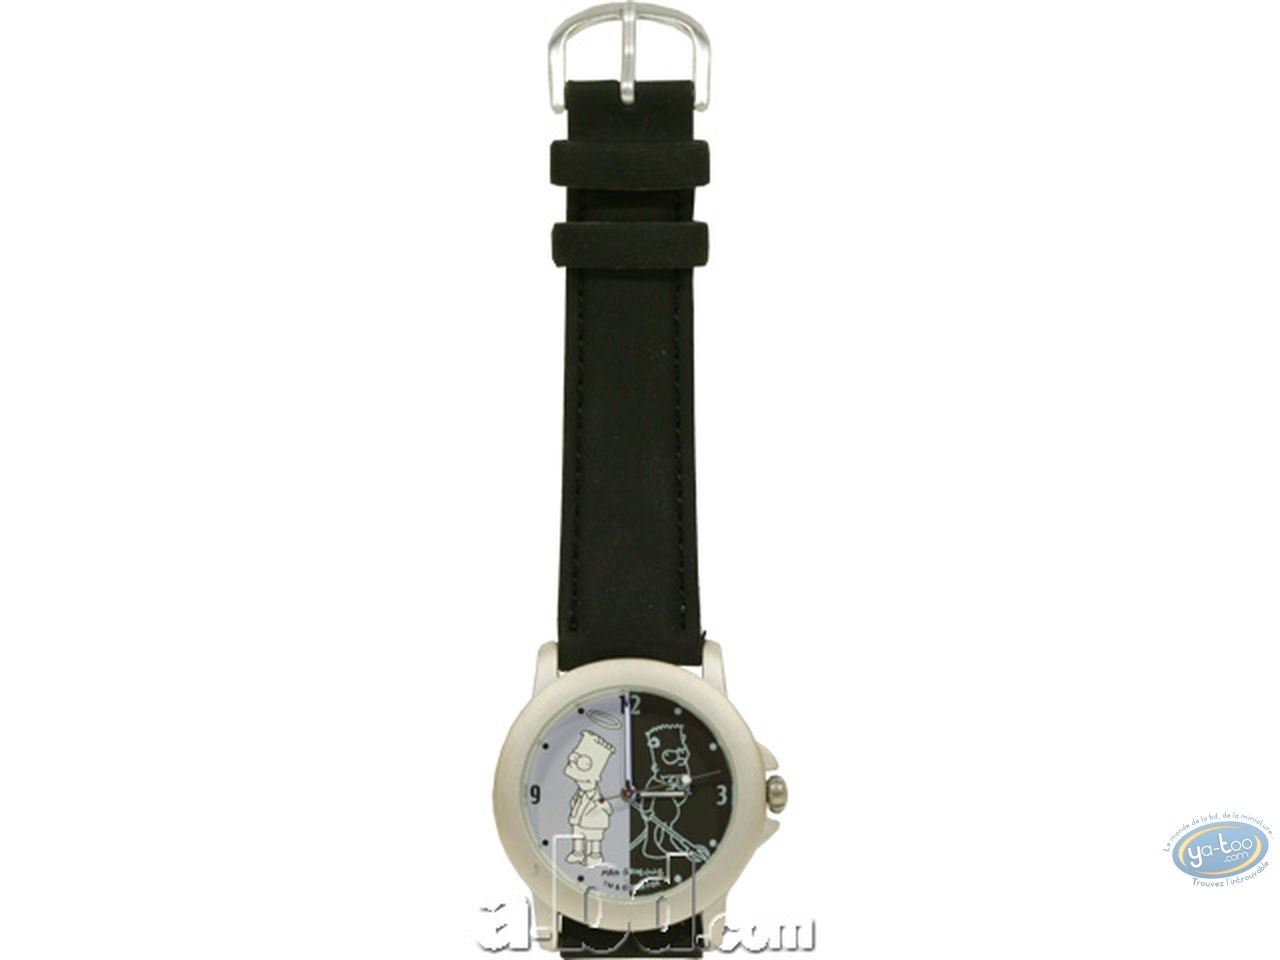 Clocks & Watches, Simpson (Les) : Watch, The Simpsons : Bart b&w (leather strap)